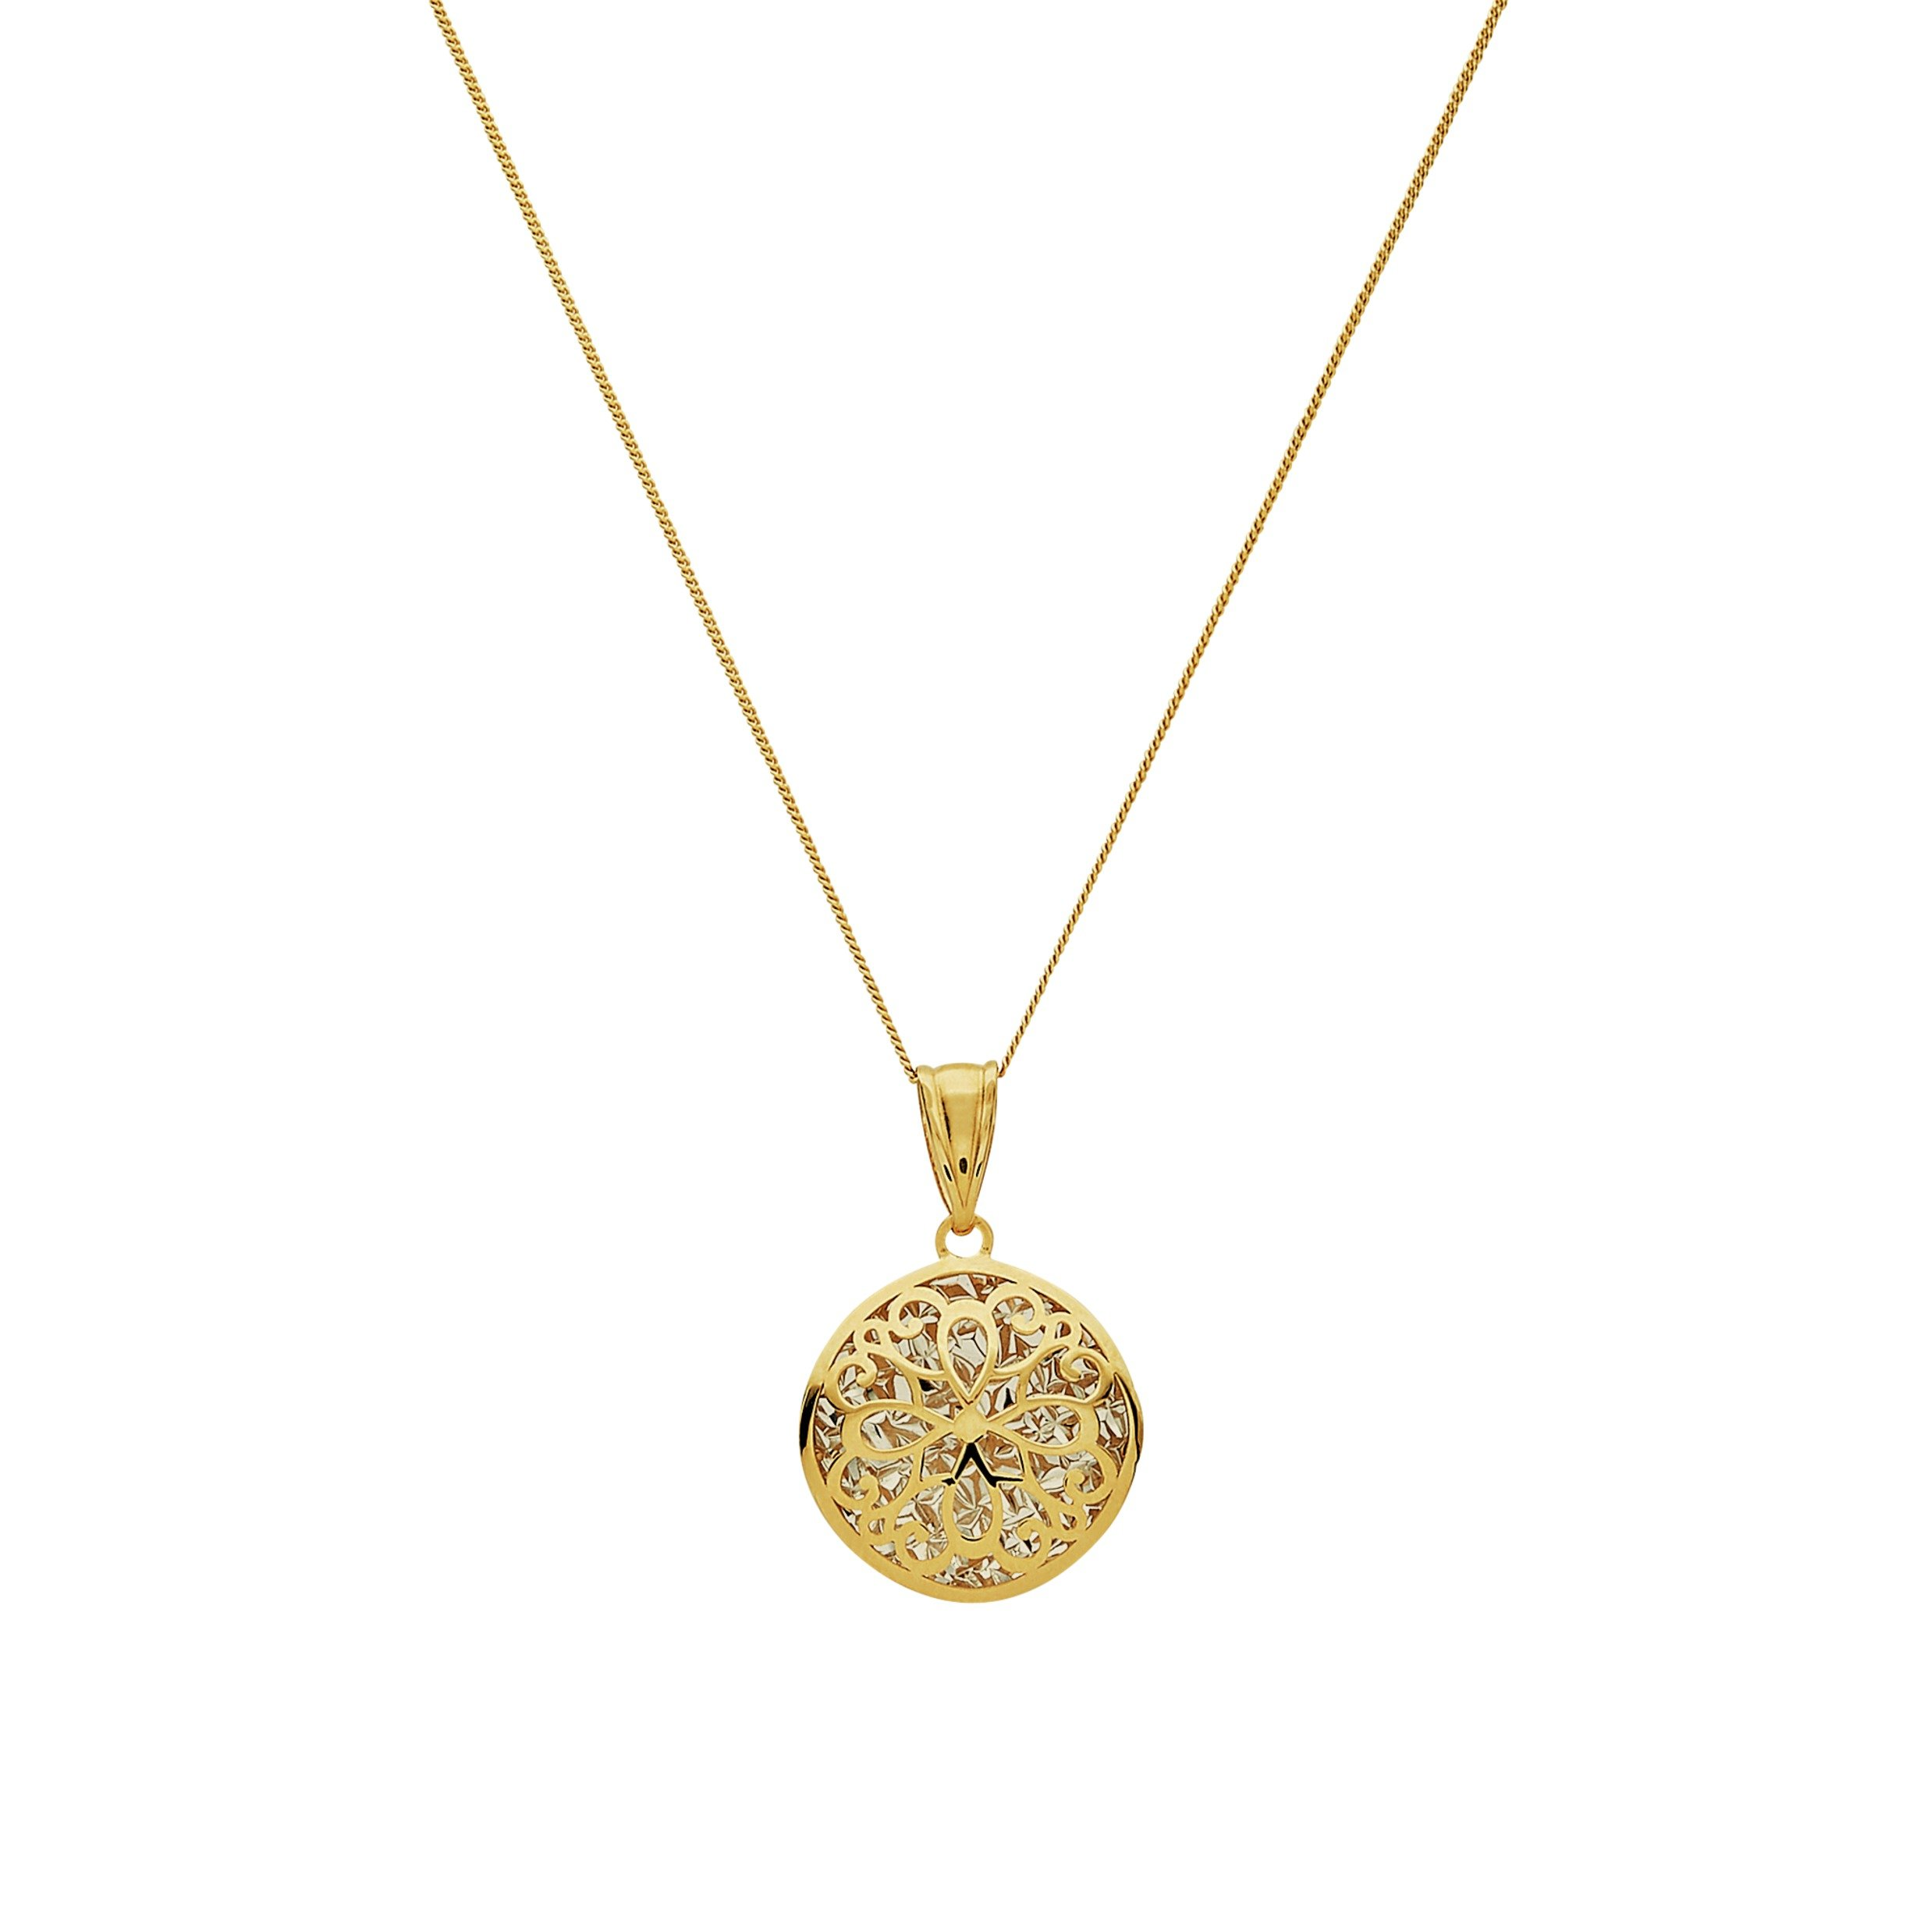 Image of Revere 9ct Gold Small Fancy Cut Out Pendant